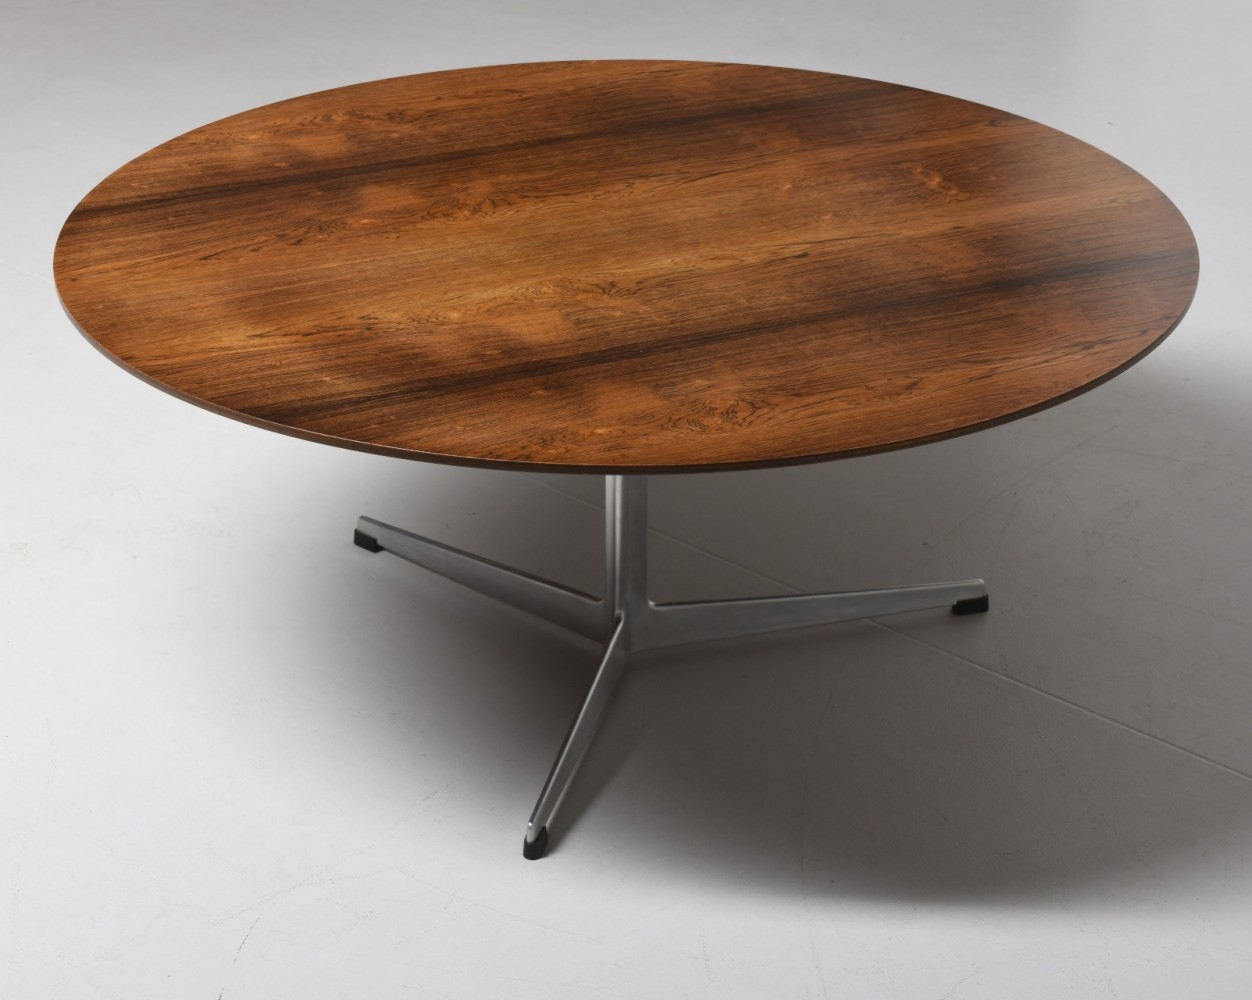 Coffee Table By Arne Jacobsen For Fritz Hansen 1950s 56968